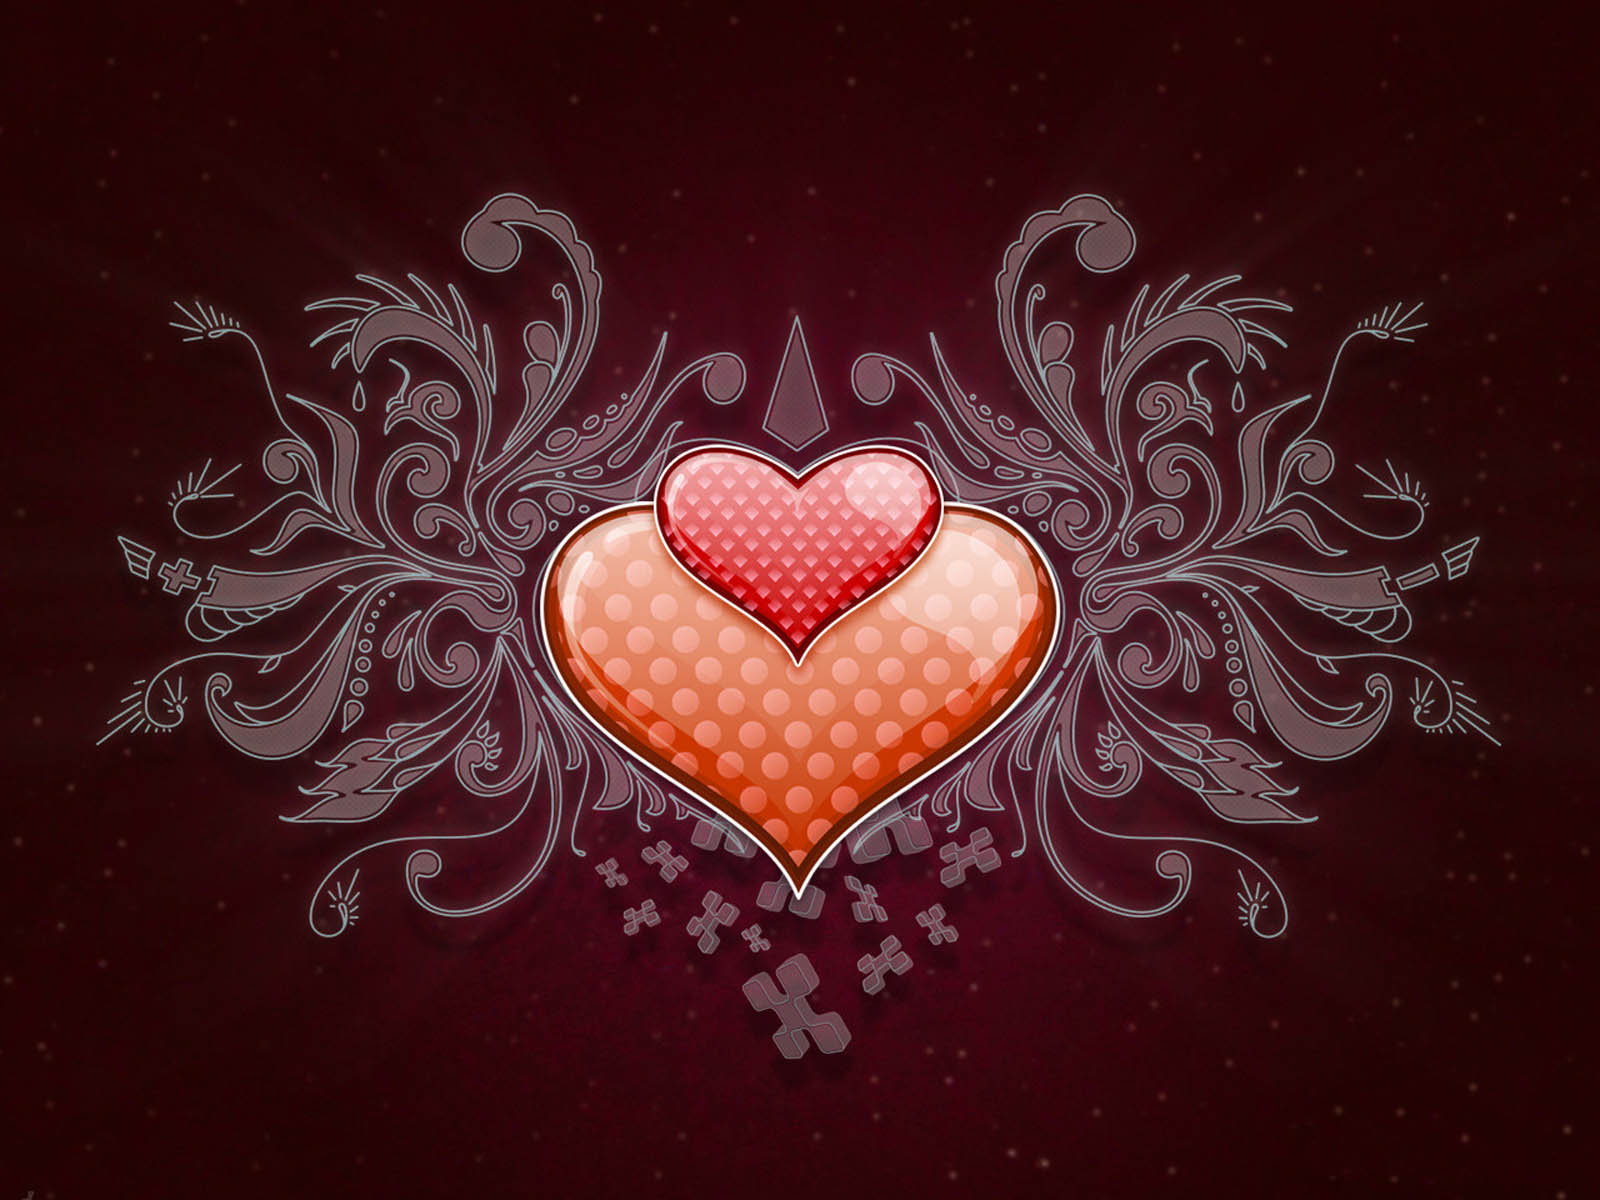 Love Heart Wallpaper Desktop : wallpapers: Love Heart Wallpapers